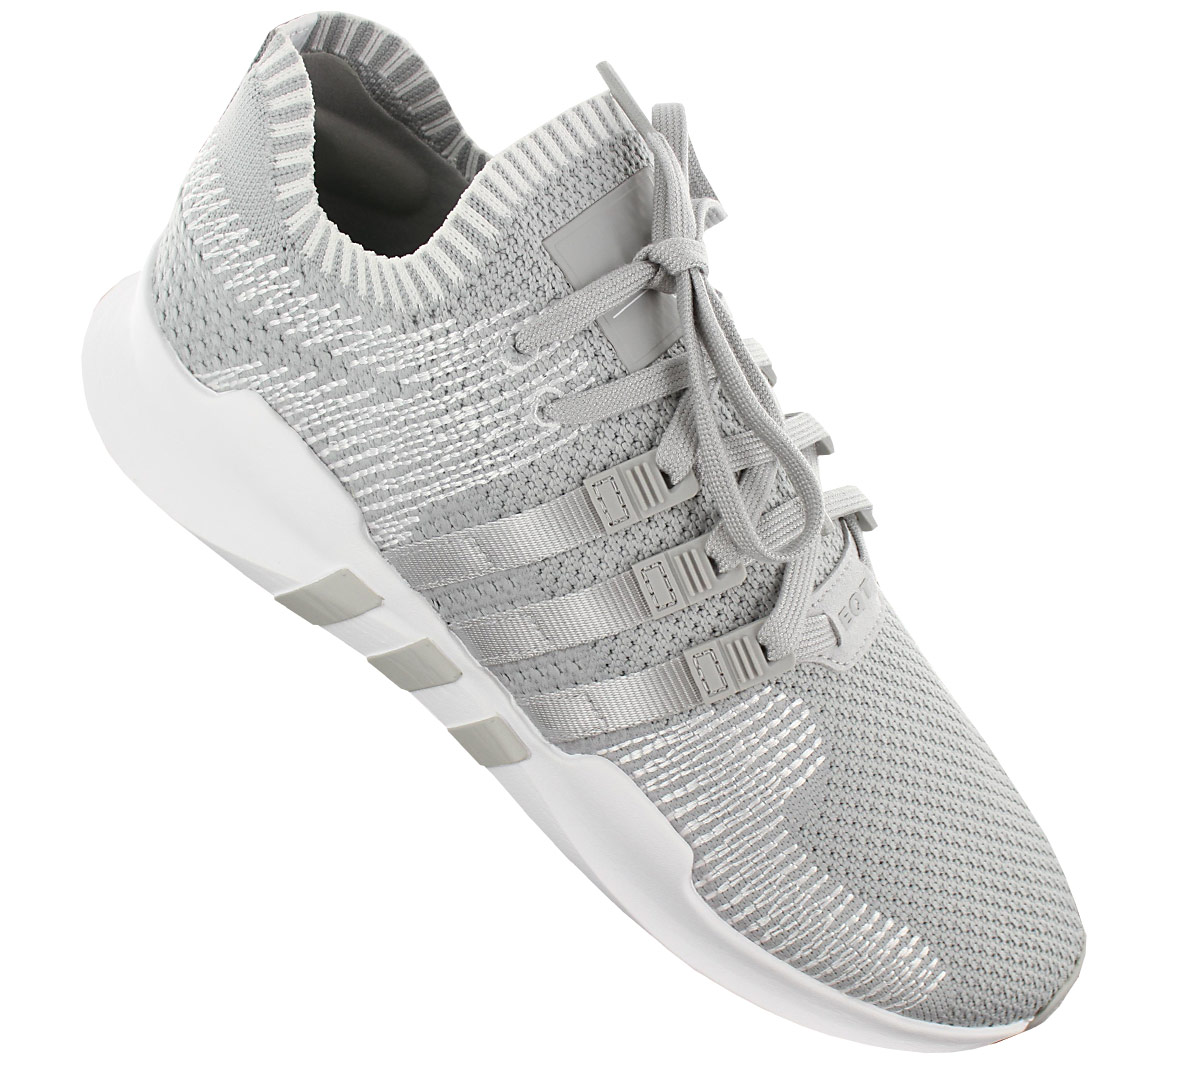 outlet store 19ca1 e9b94 Adidas Originals Eqt Equipment Support Adv Pk Primeknit Trai